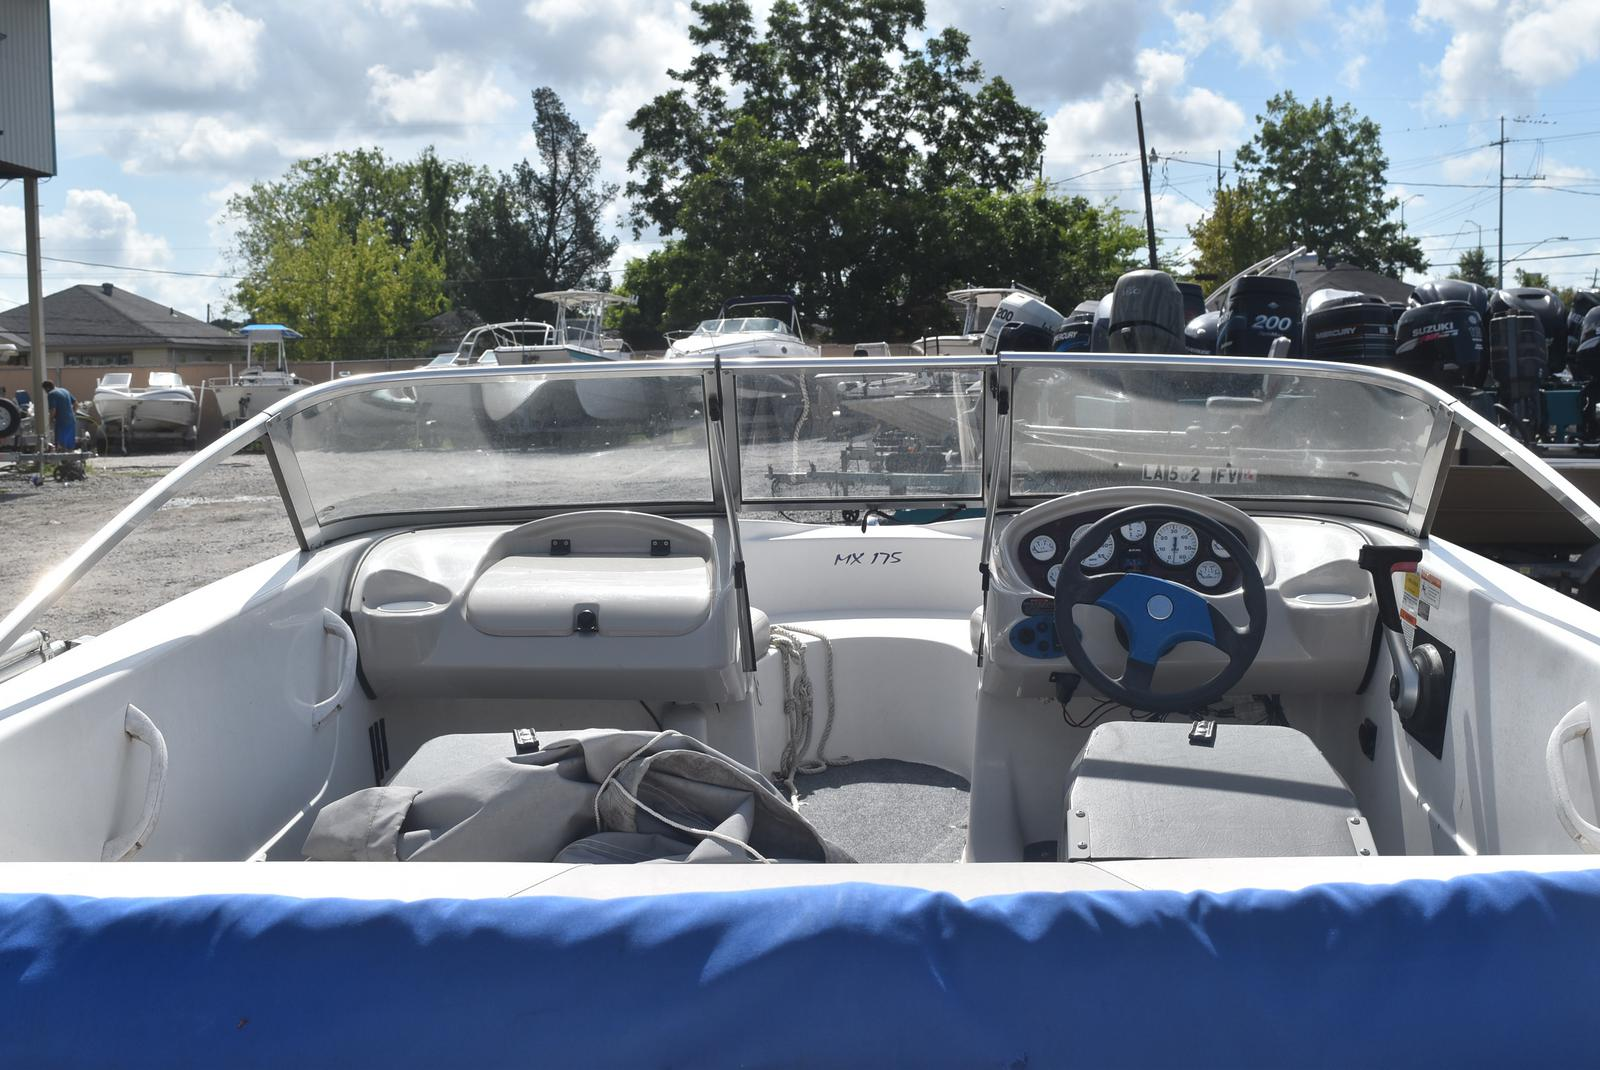 2006 Glastron boat for sale, model of the boat is MX 175 & Image # 17 of 21